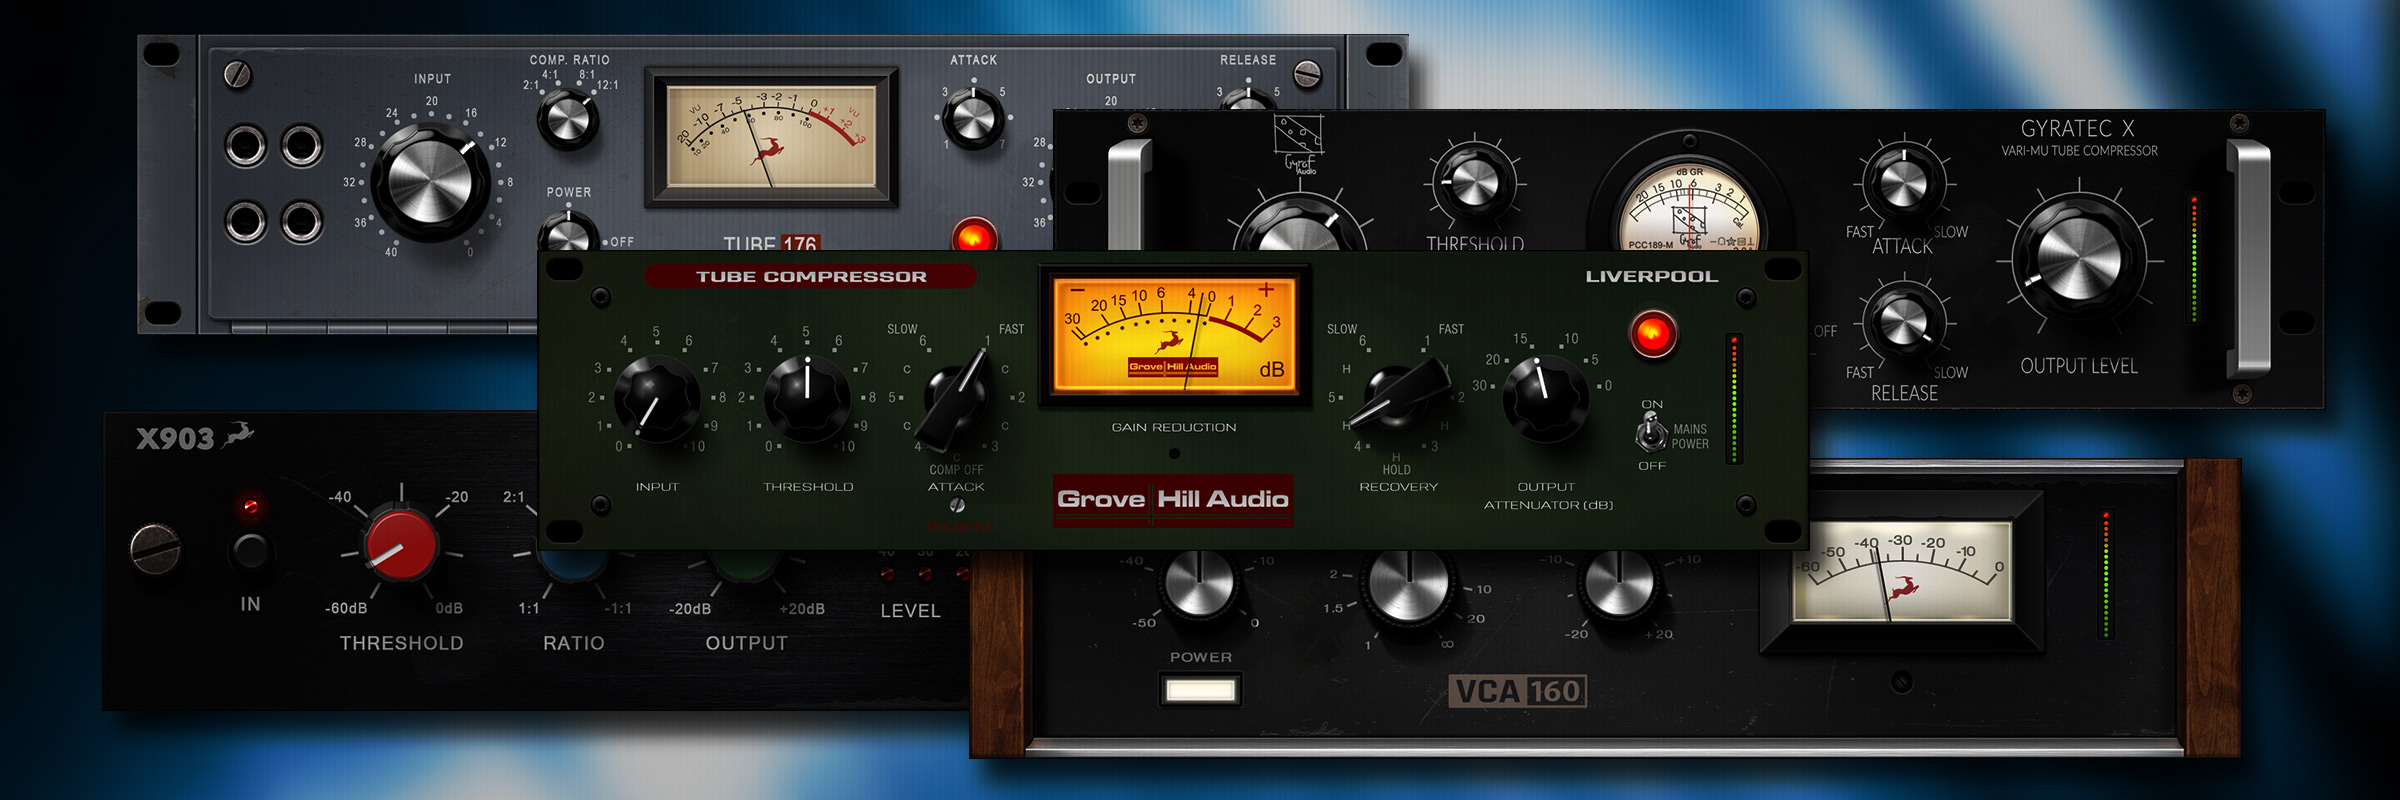 Five new vintage compressor FX you can get only from Antelope Audio